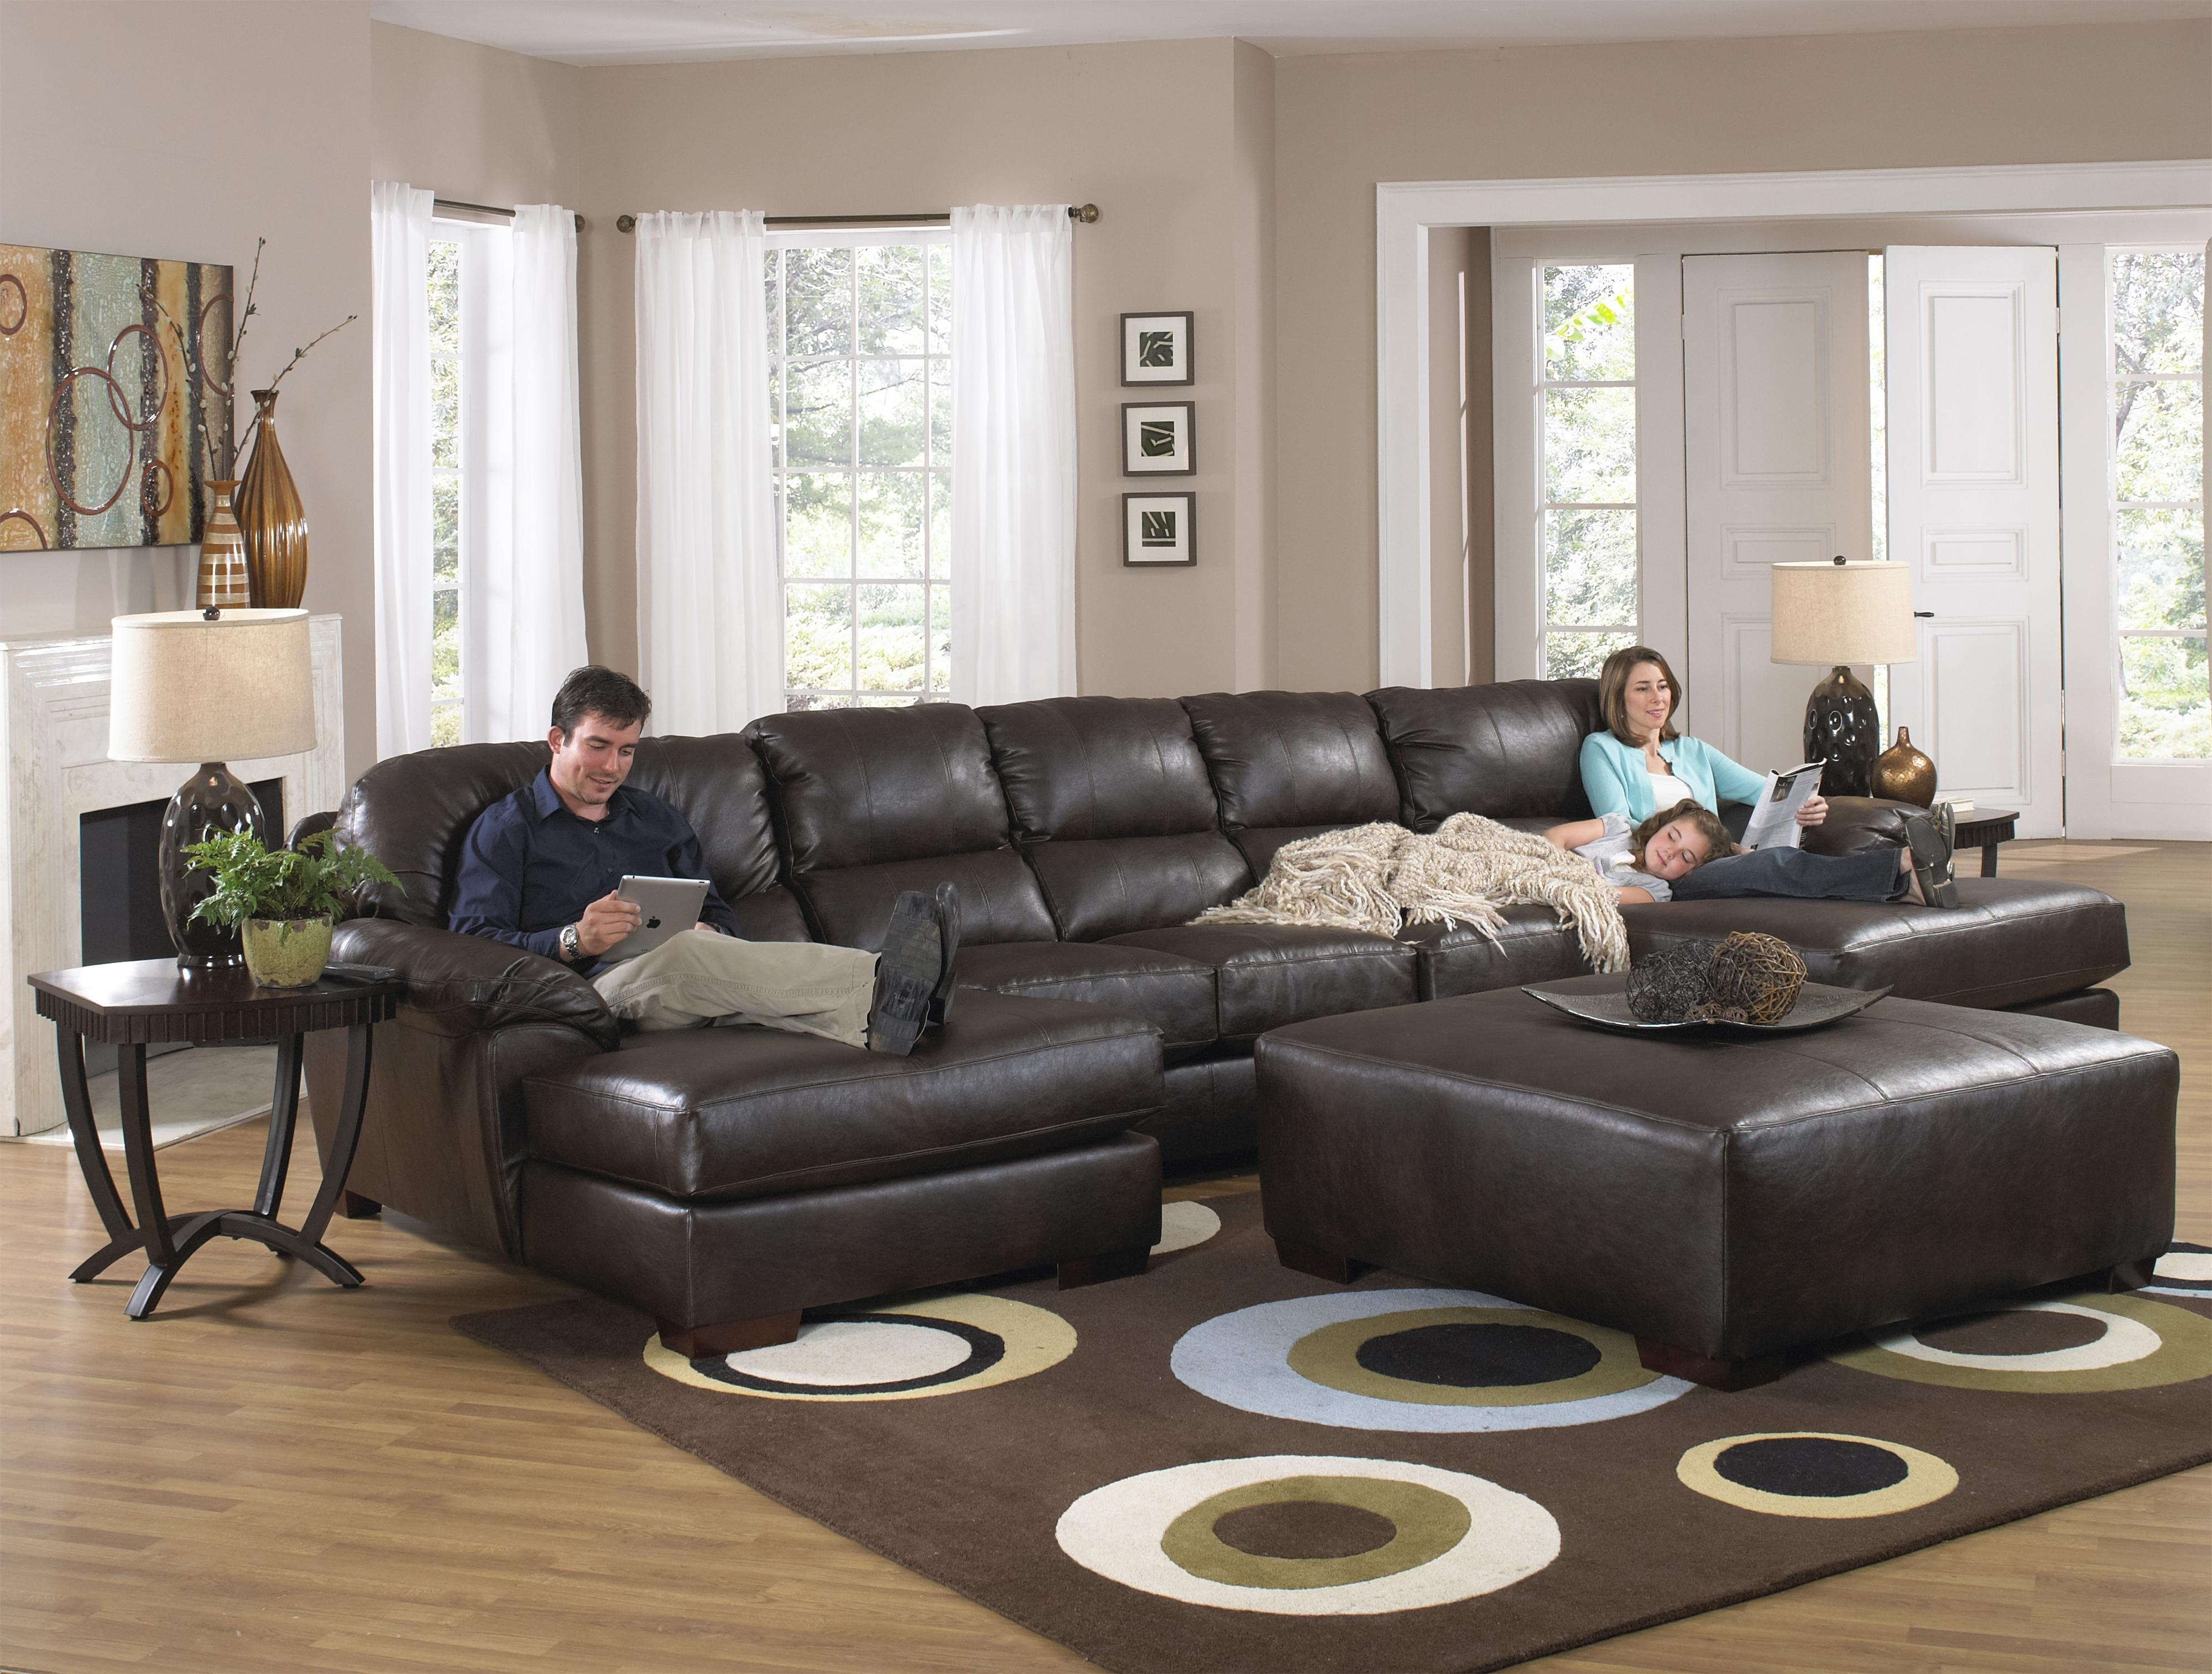 Leather Sectional Sofas With Ottoman Pertaining To Current Furniture : Two Chaise Sectional Sofa With Five Total Seats (View 12 of 15)